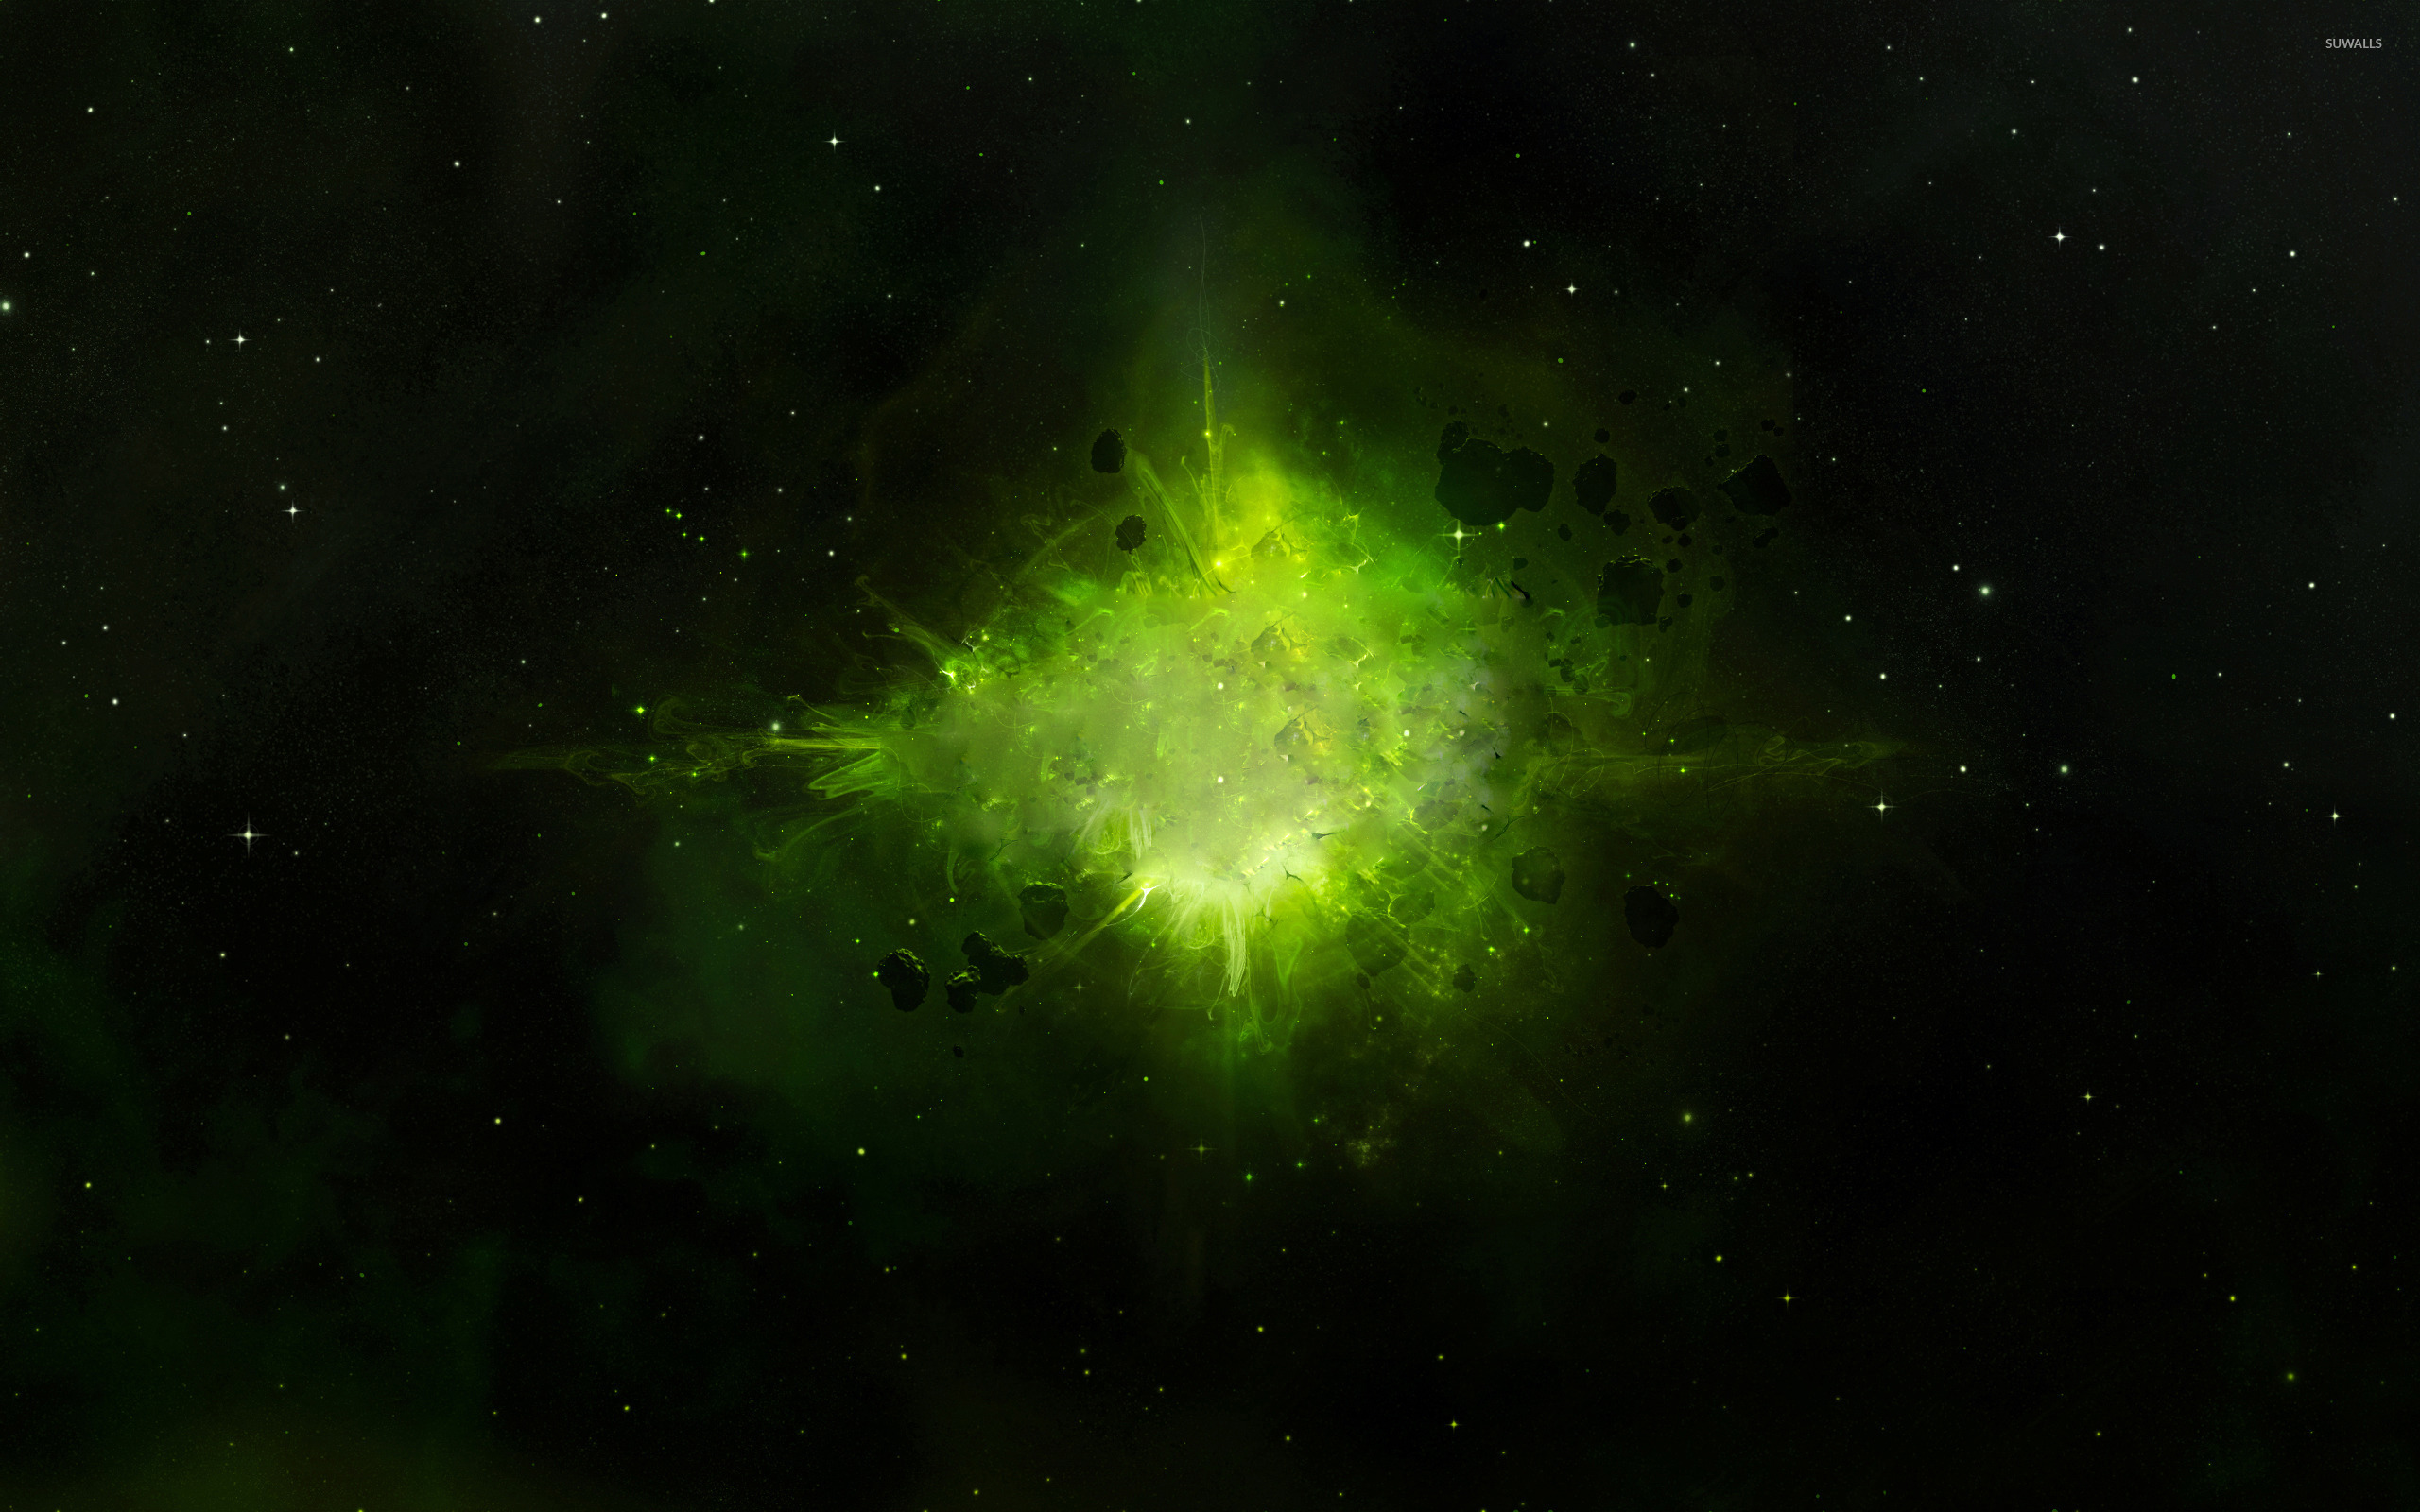 Green Explosion In Space Wallpaper Space Wallpapers 43181